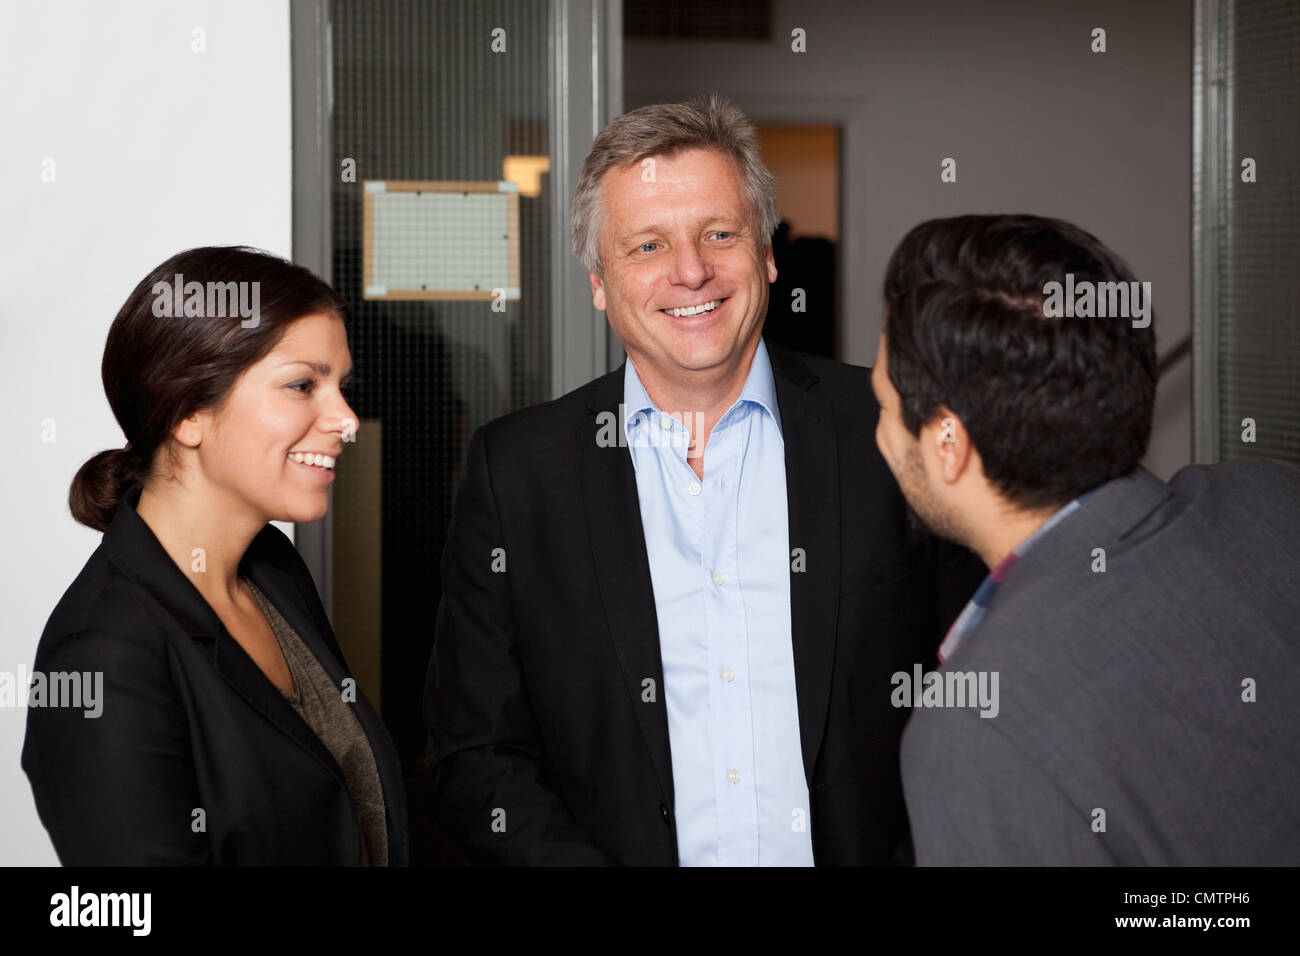 Three colleagues meet and laugh - Stock Image